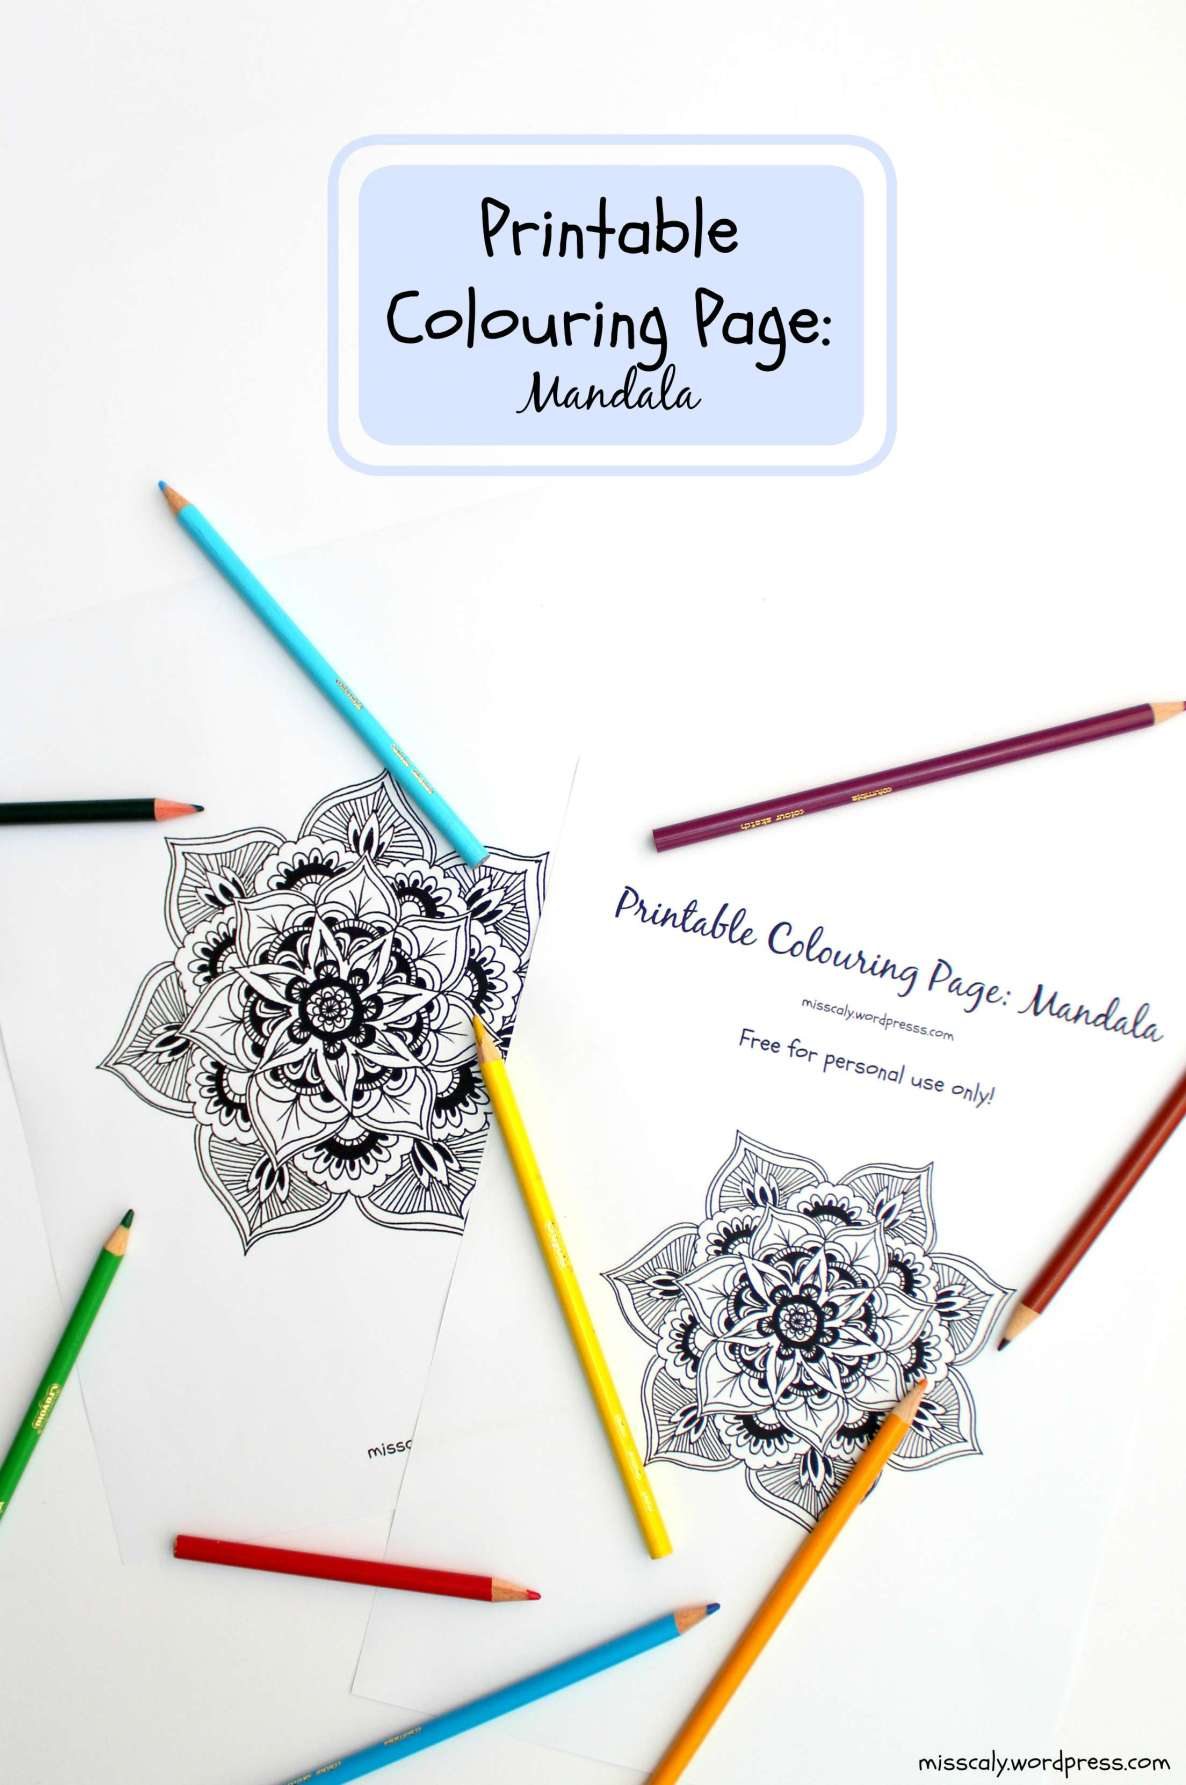 Printable Mandala colouring